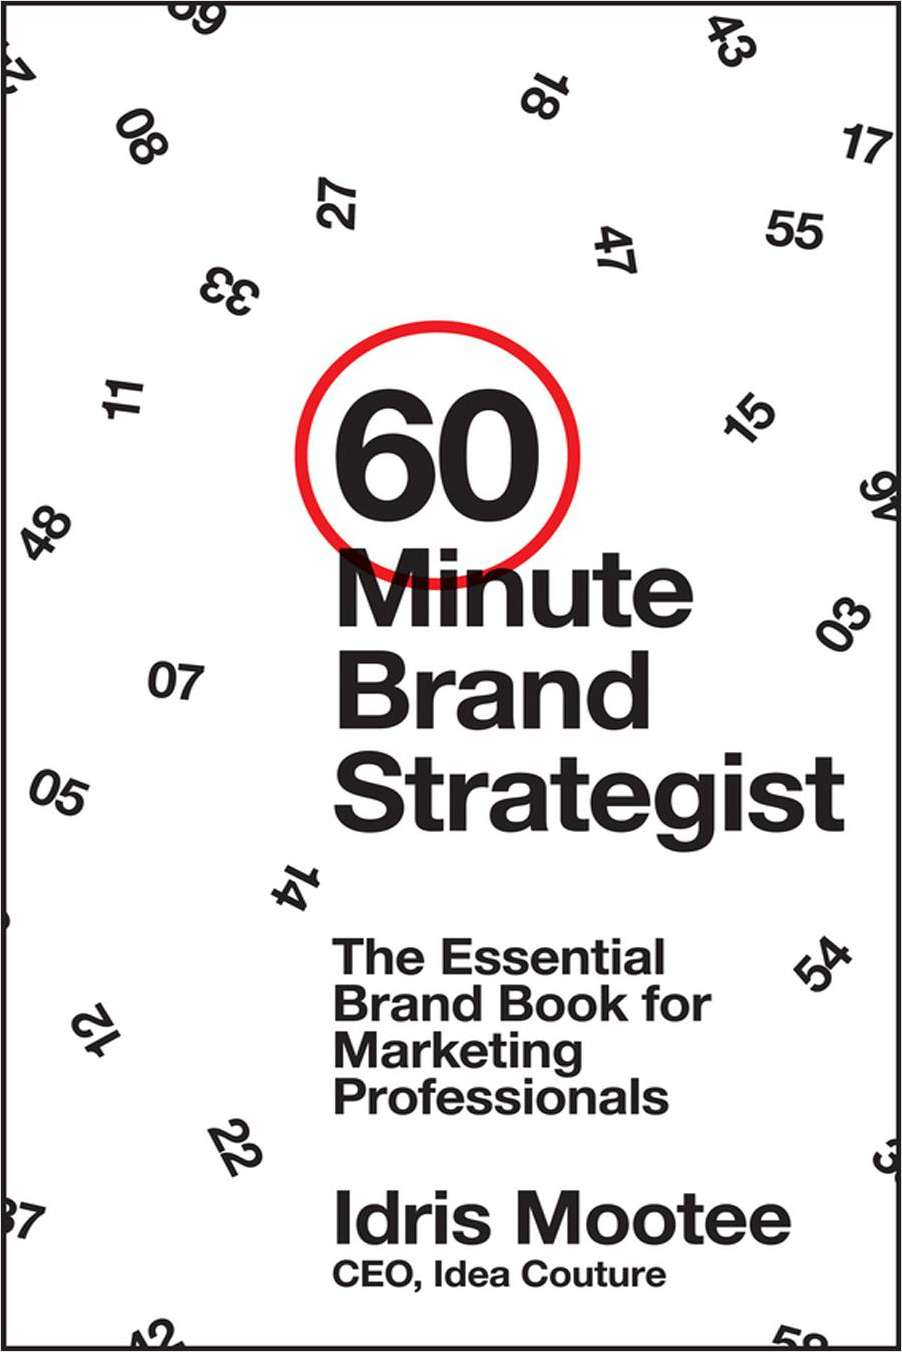 60-Minute Brand Strategist: The Essential Brand Book for